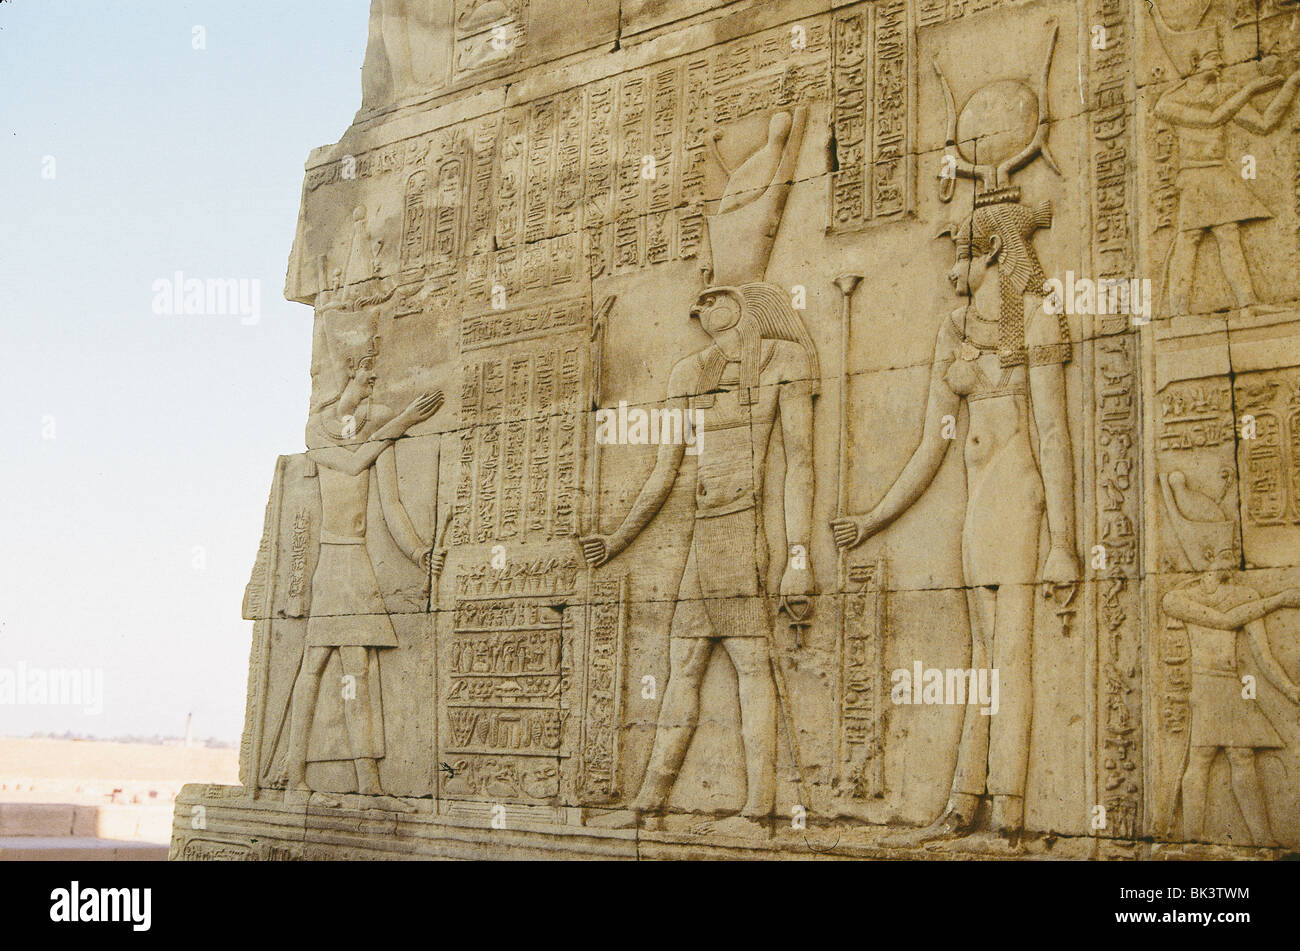 Bas-relief sculpture with depictions of the Egyptian god Horus and goddess Hathor, Egypt - Stock Image